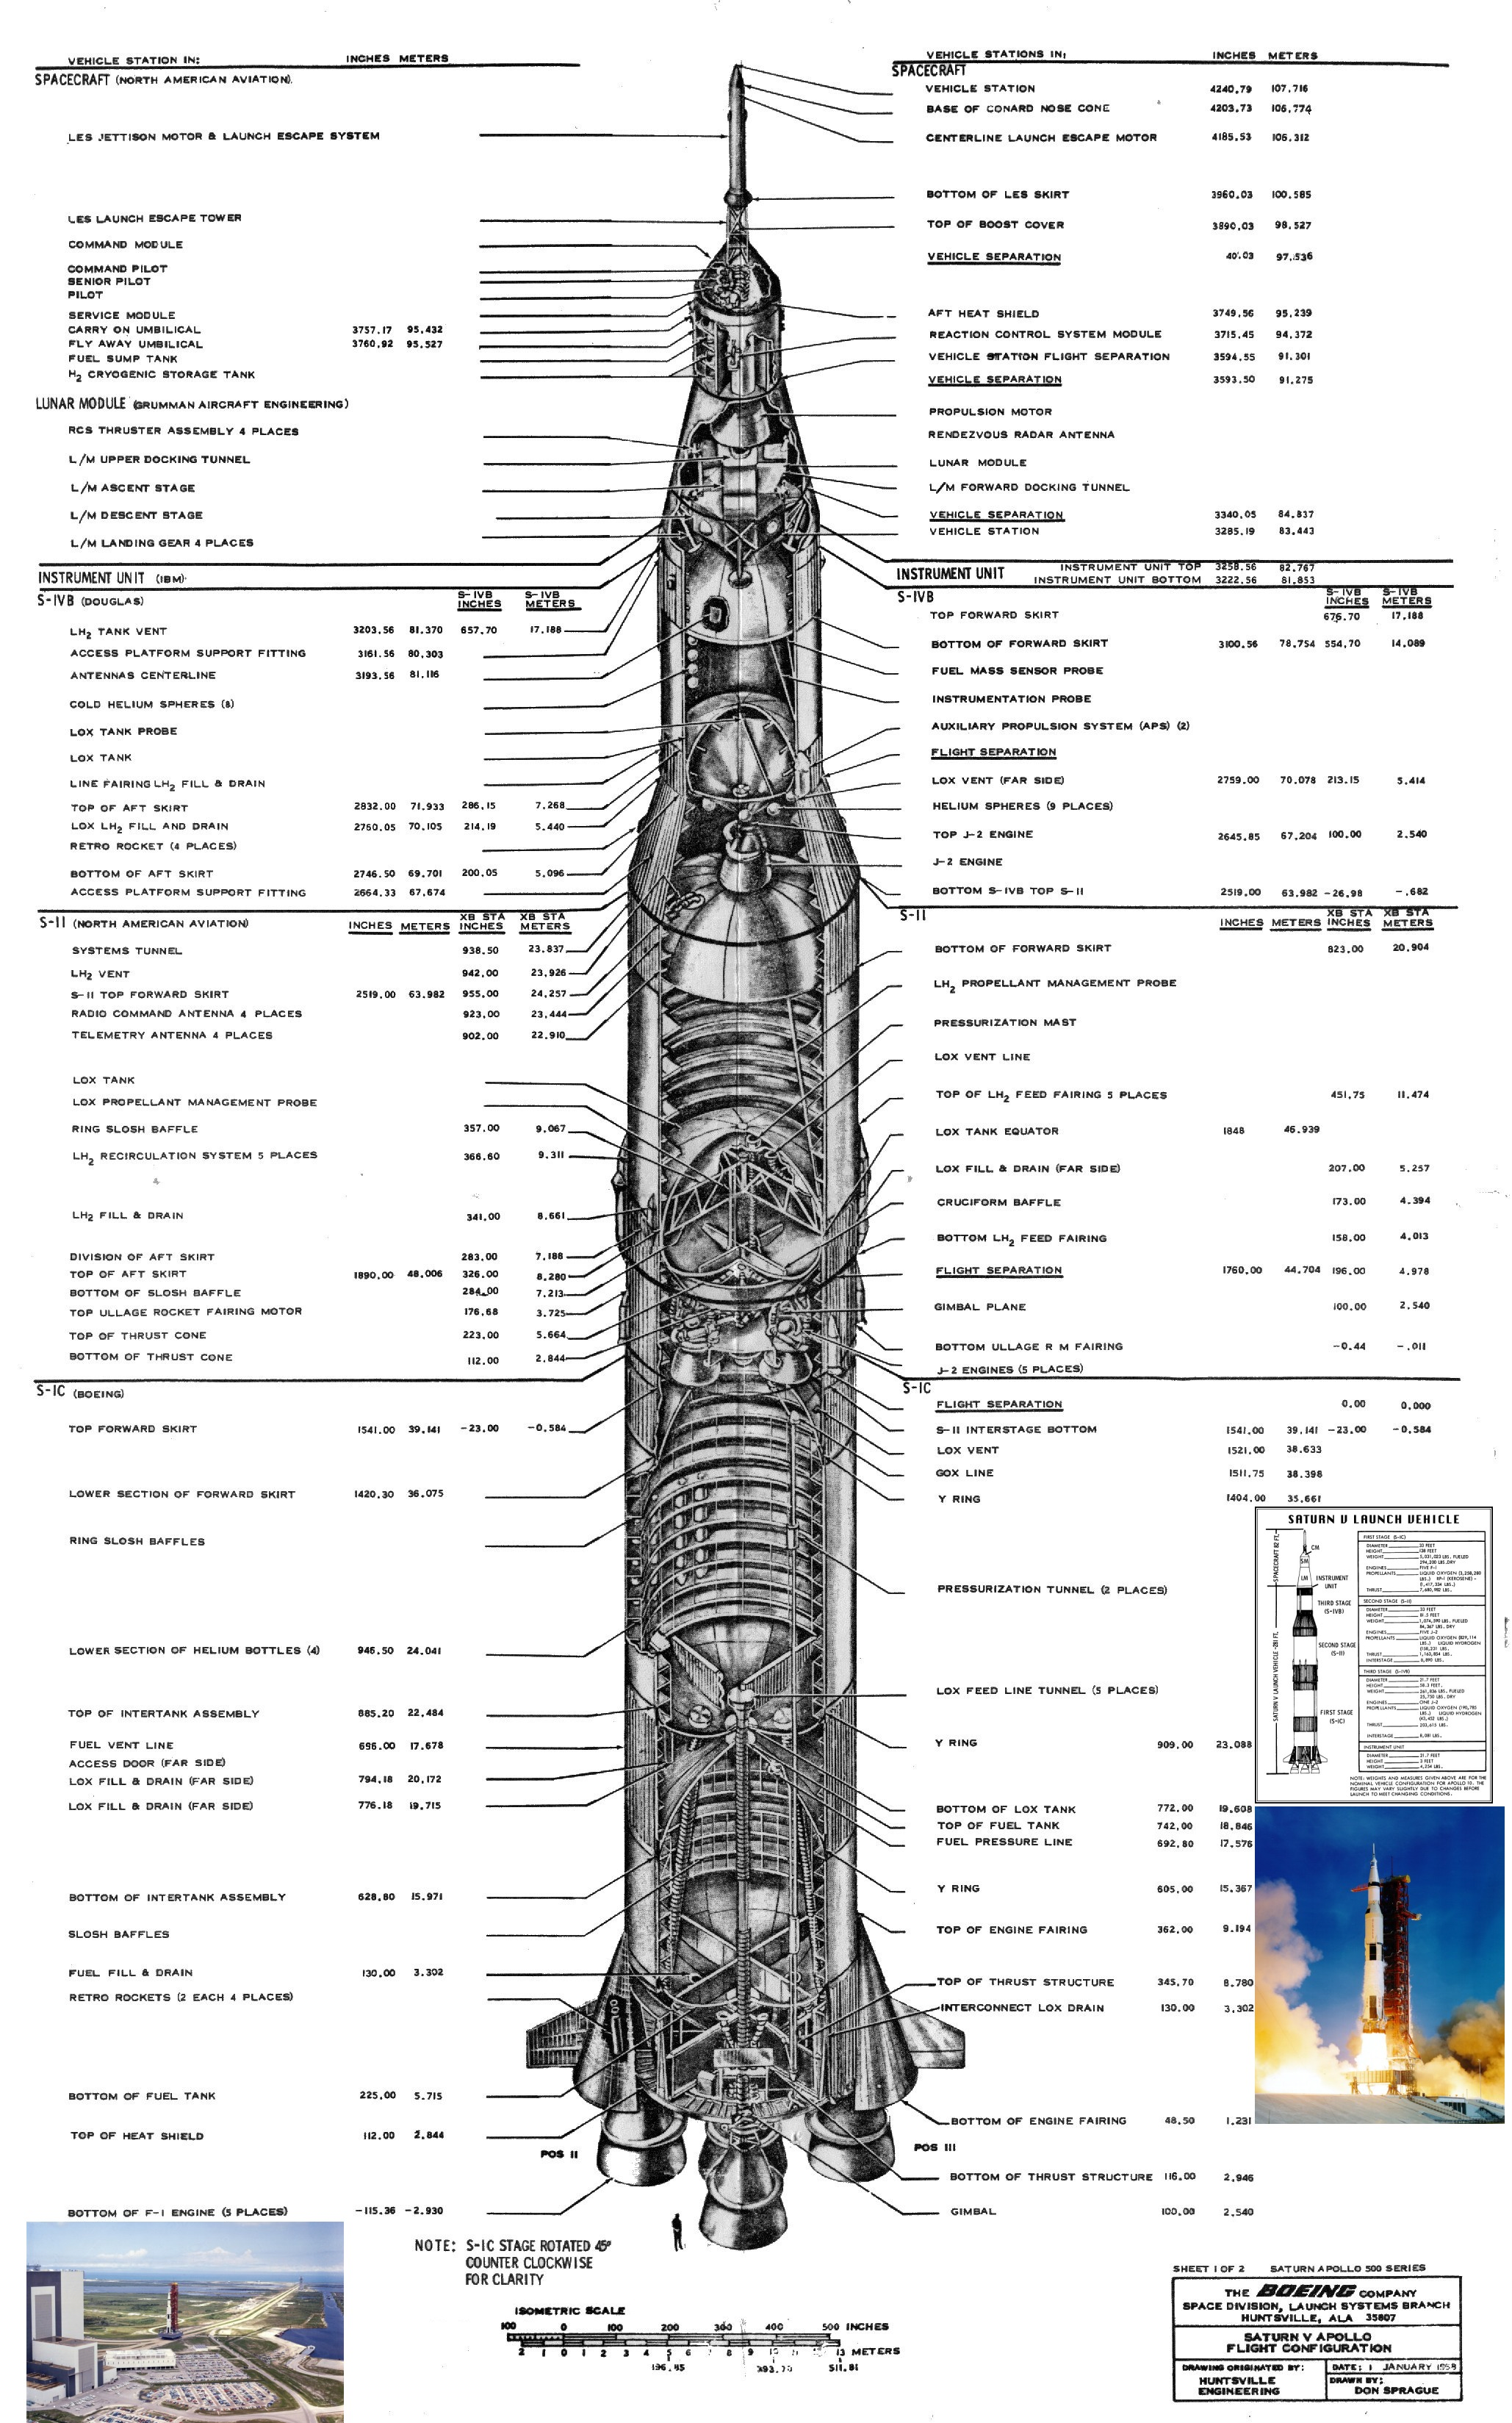 Help Need Correct Dimensions Of Saturn V Rocket